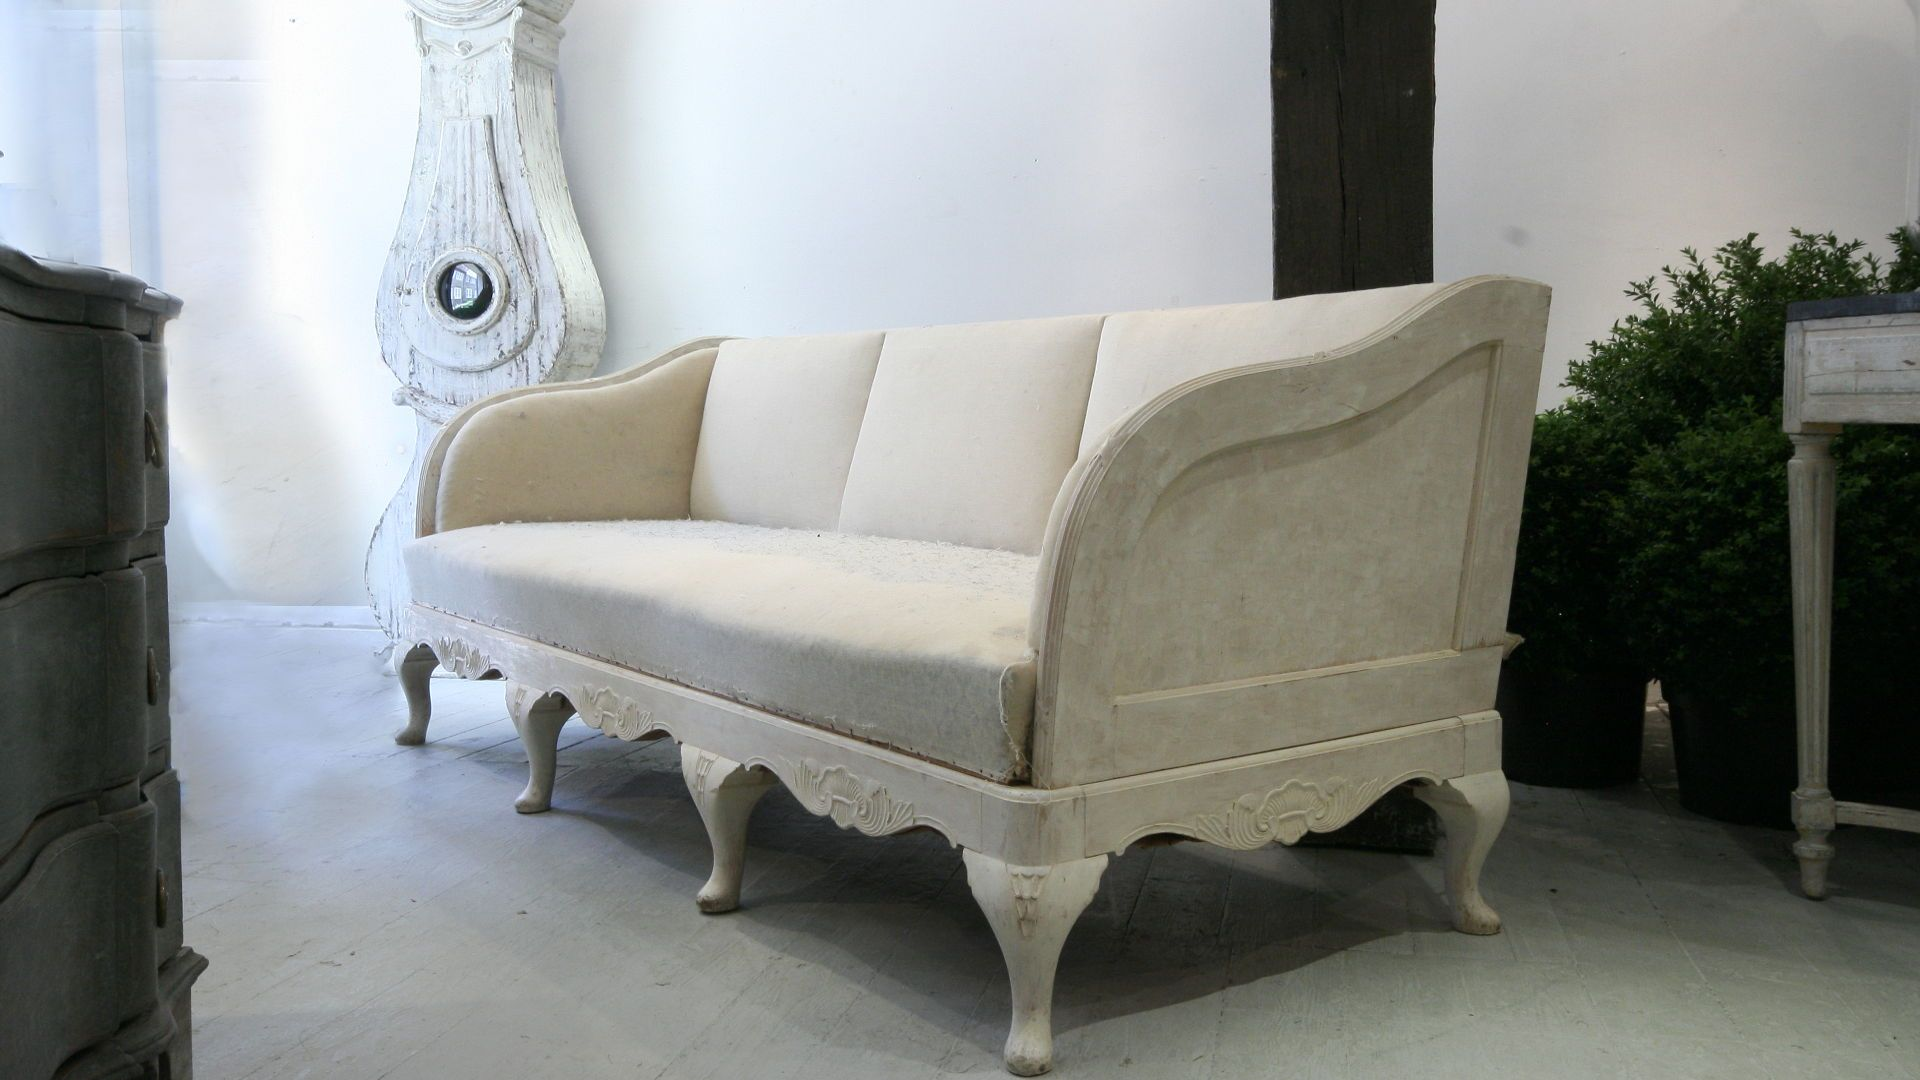 19c Swedish Sofa With Cabriole Legs And Exposed Wood Frame